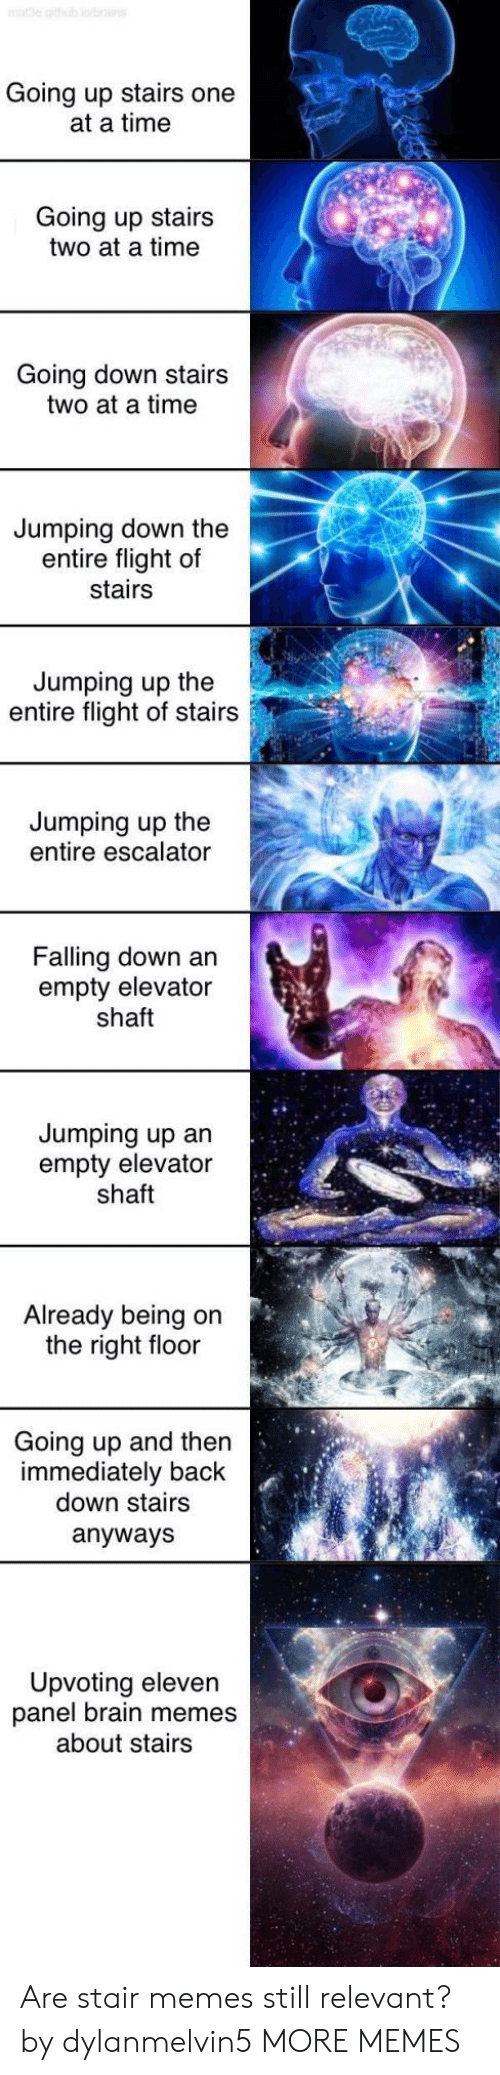 shaft: Going up stairs one  at a time  Going up stairs  two at a time  Going down stairs  two at a time  Jumping down the  entire flight of  stairs  Jumping up the  entire flight of stairs  Jumping up the  entire escalator  Falling down an  empty elevator  shaft  Jumping up an  empty elevator  shaft  Already being on  the right floor  Going up and then  immediately back  down stairs  anyways  Upvoting eleven  panel brain memes  about stairs Are stair memes still relevant? by dylanmelvin5 MORE MEMES